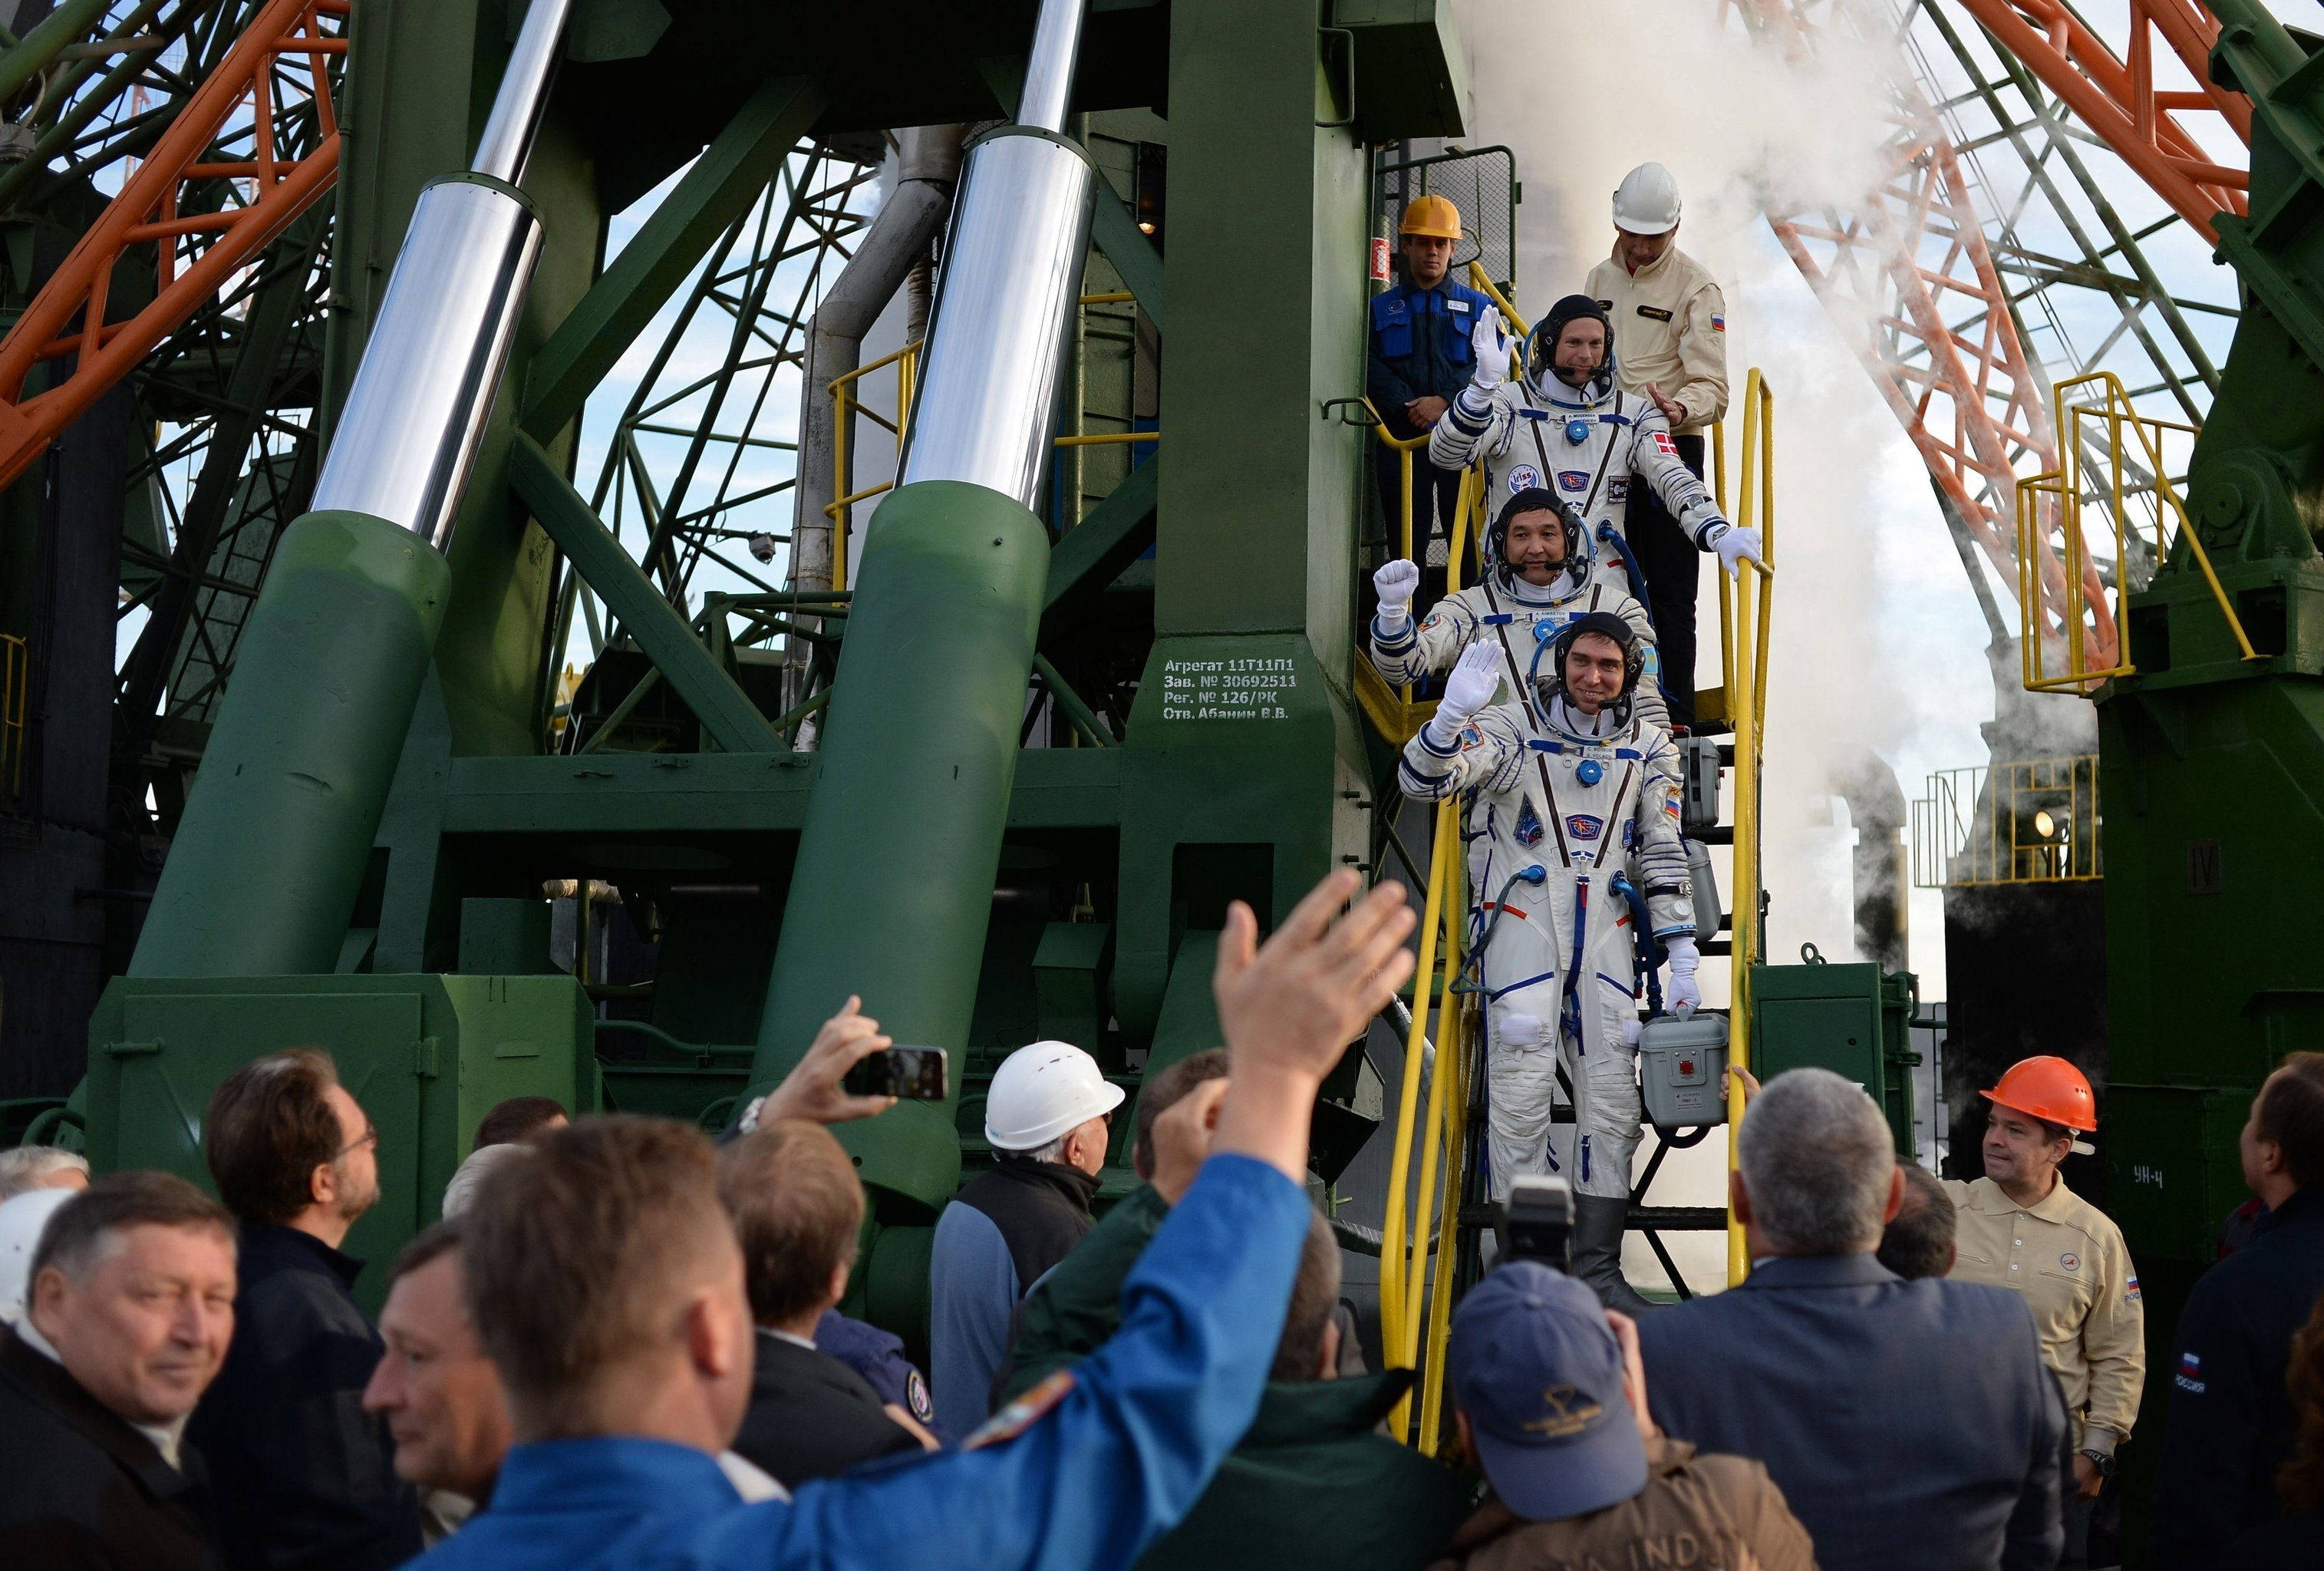 Crew members of the long-term expedition 45/46 to the ISS and visiting expedition 18, top to bottom: ESA astronaut Andreas Mogensen, Kazakh cosmonaut Aidyn Aimbetov and Roscosmos cosmonaut Sergei Volkov before the launch of Soyuz TMA-18M spacecraft with crew of long-term expedition 45/46 to the International